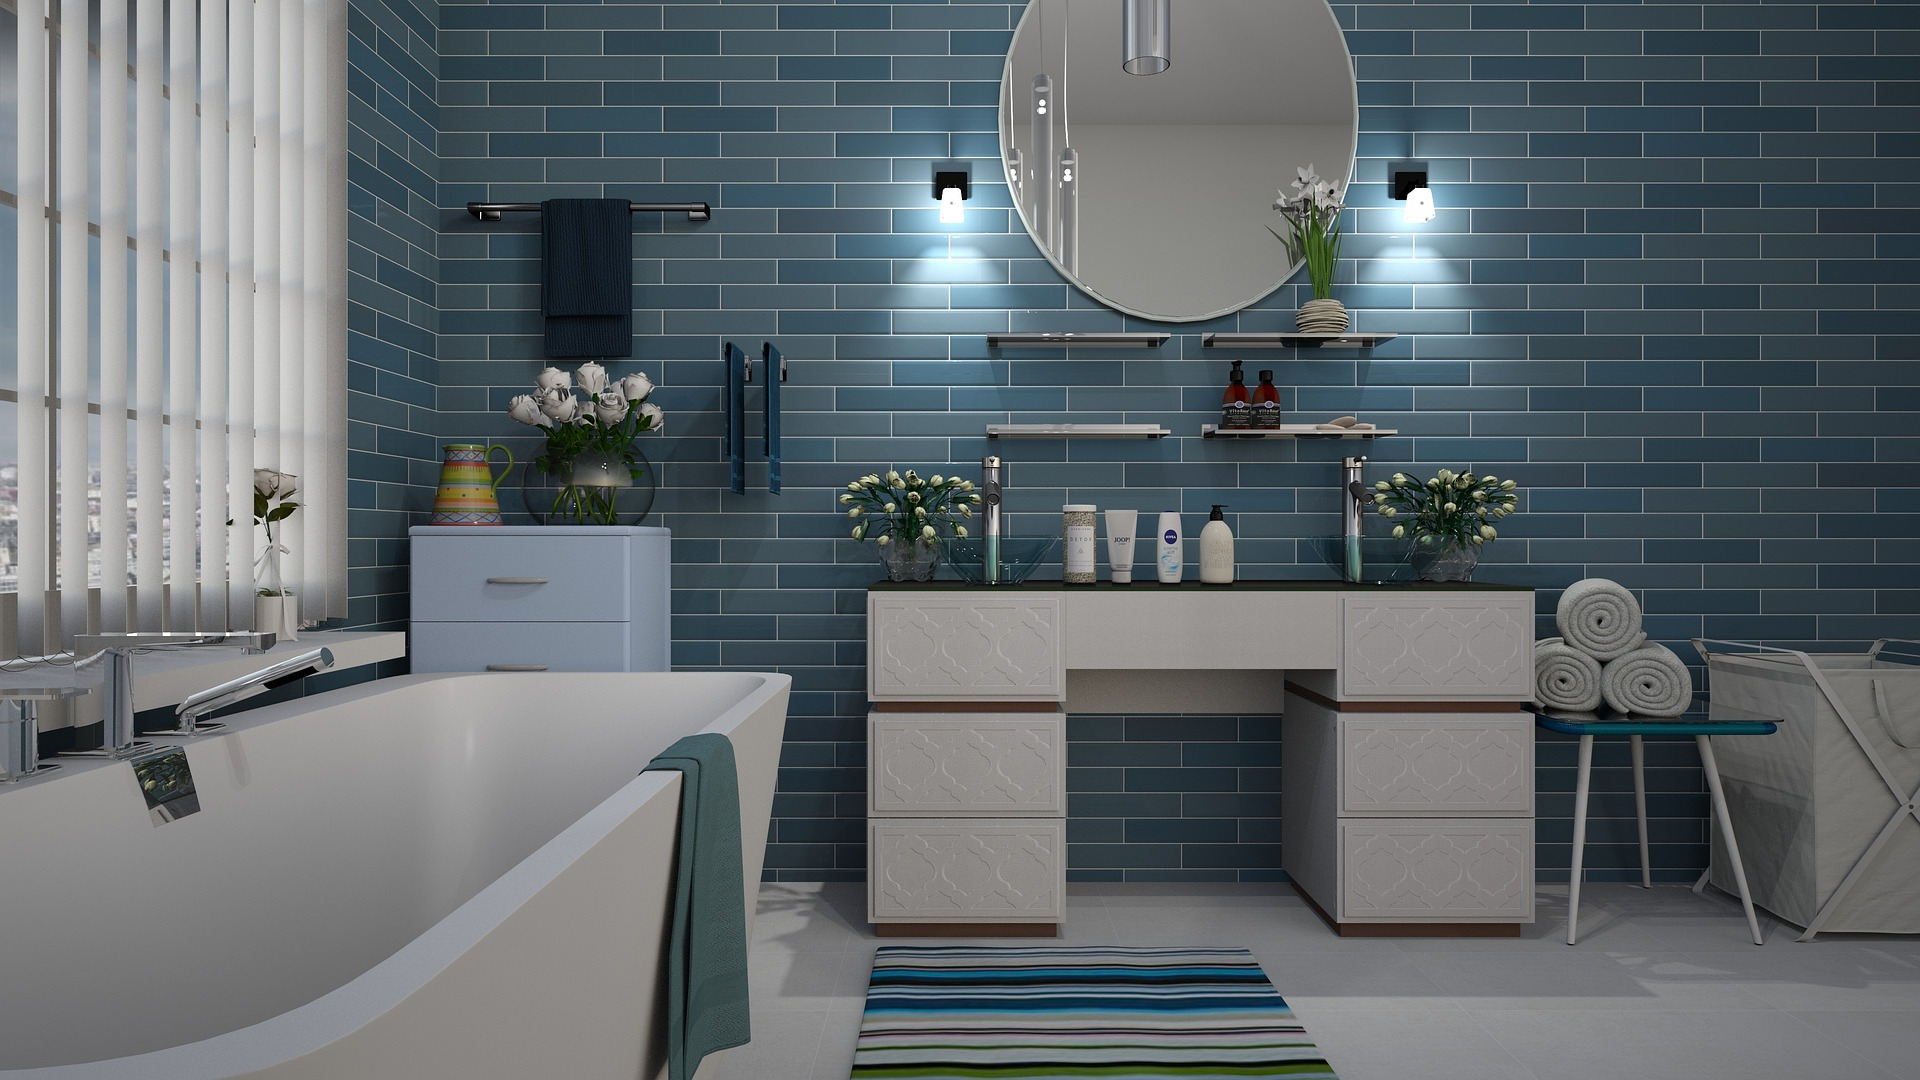 Best Bathroom Design Ideas You Should Try The House Shop Blog